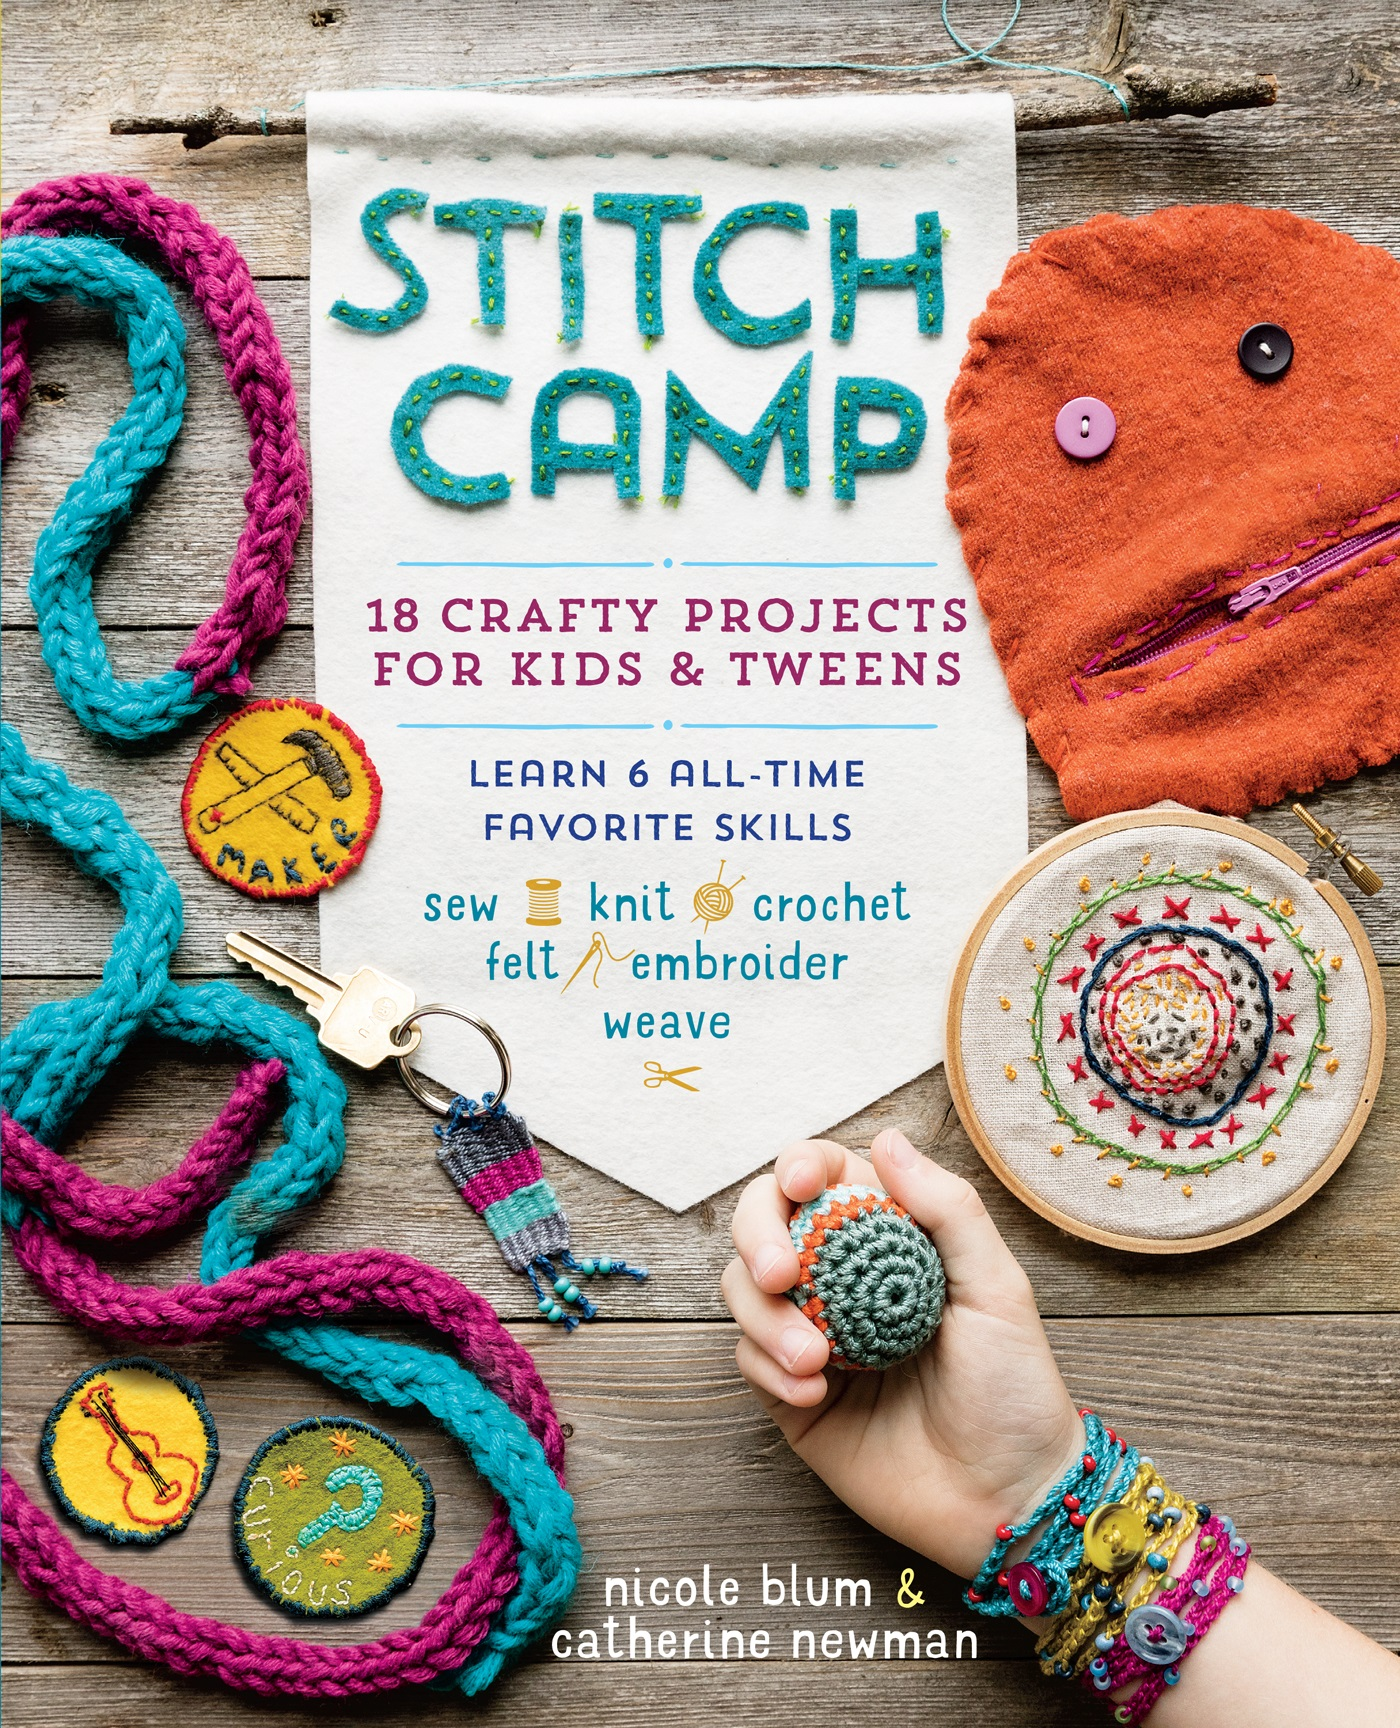 Stitch Camp-18 Crafty Projects for Kids & Tweens